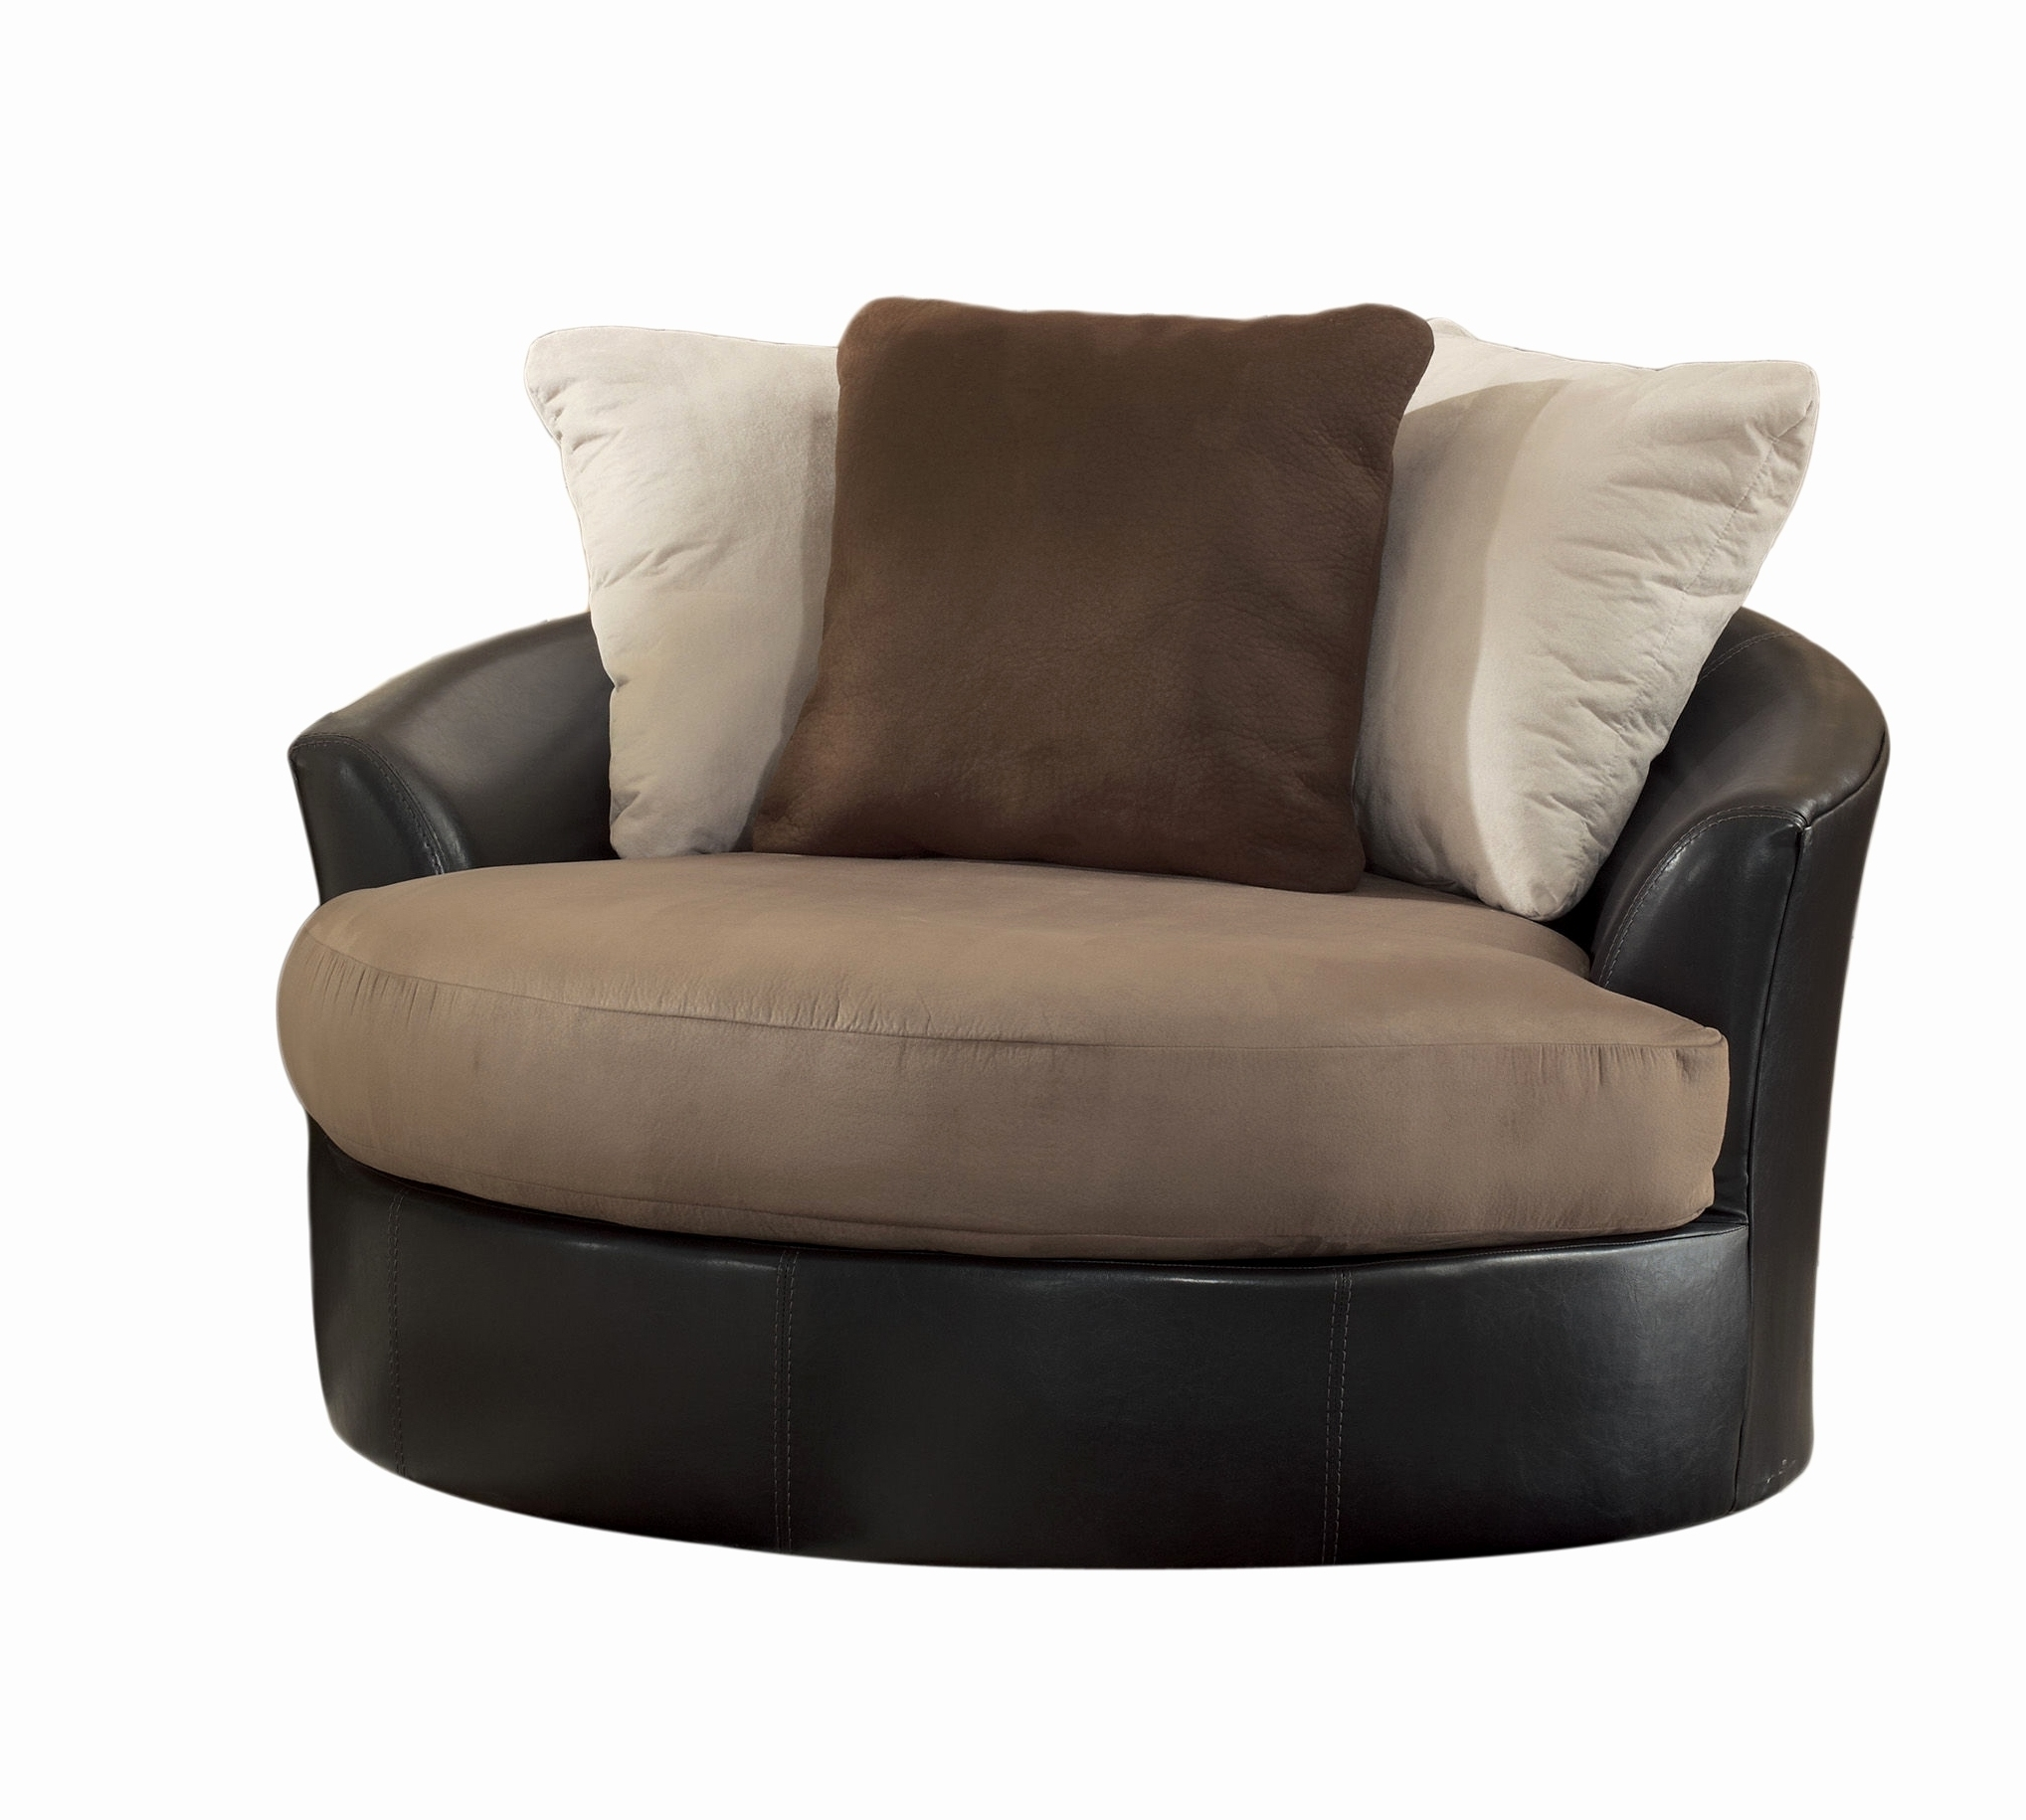 Sofas With Swivel Chair Throughout Most Recent Sofas : Armchair Big Round Swivel Chair Circle Swivel Chair Small (View 10 of 15)